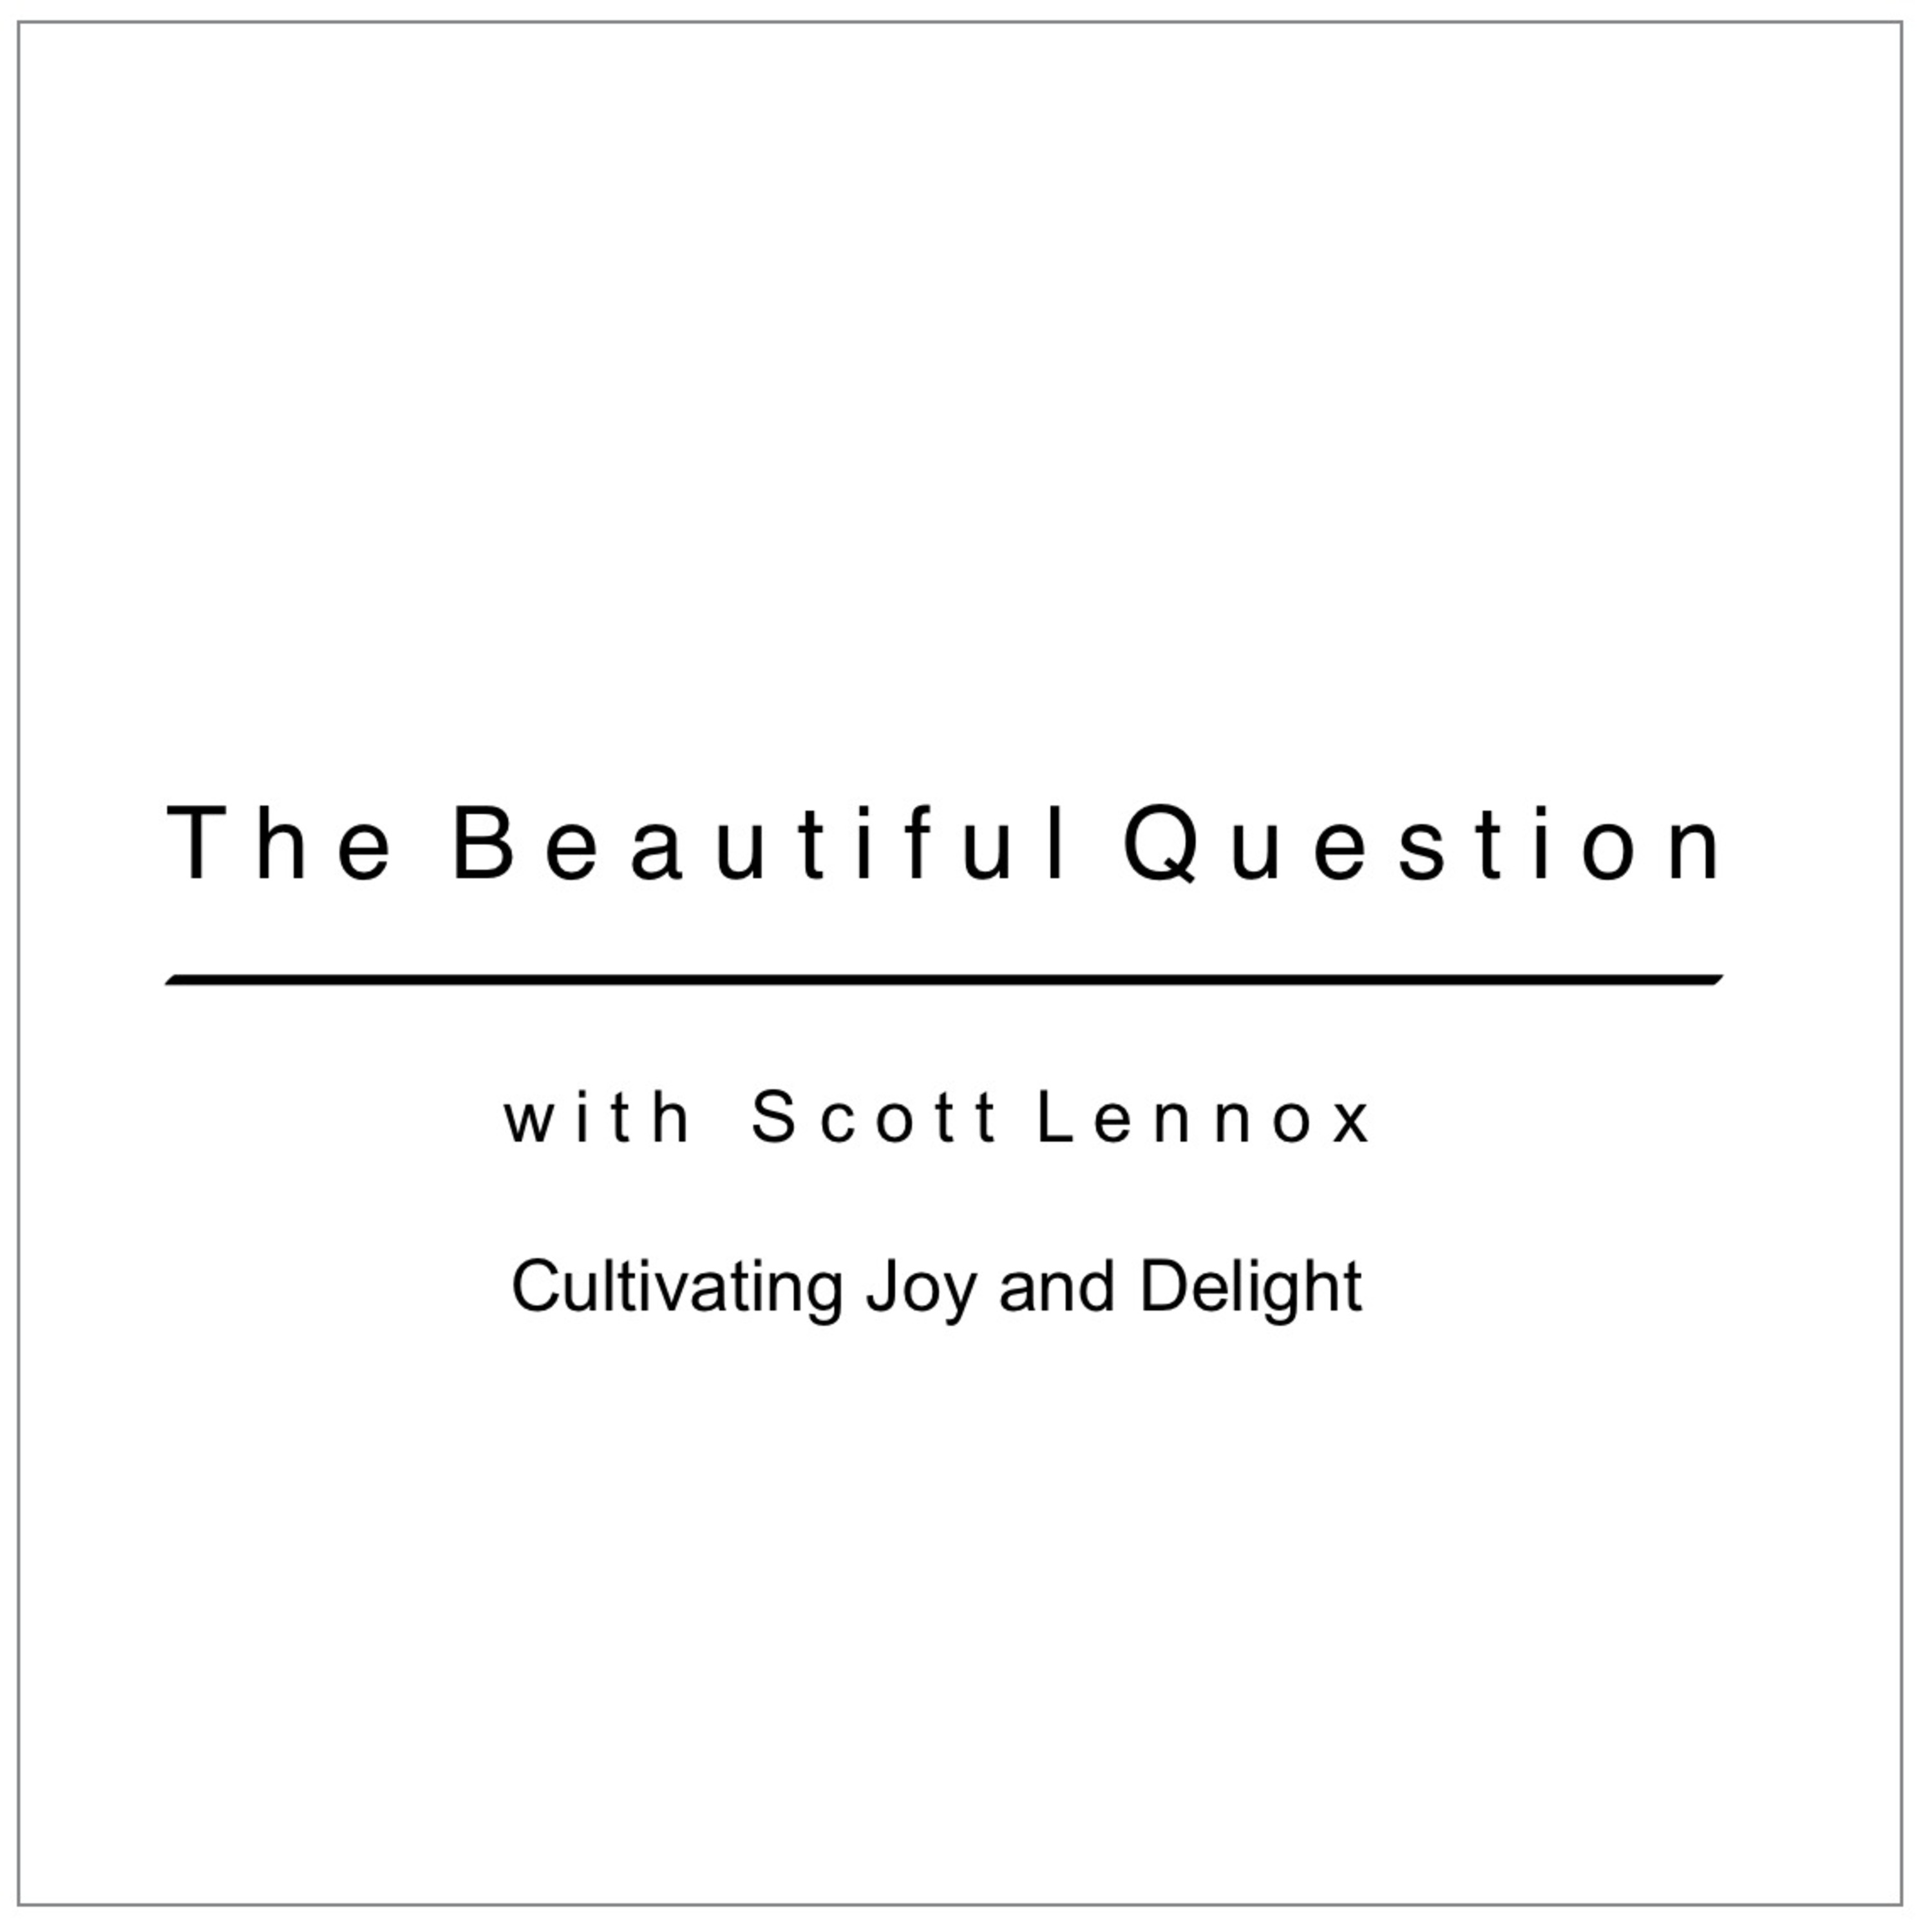 Cultivating Joy and Delight